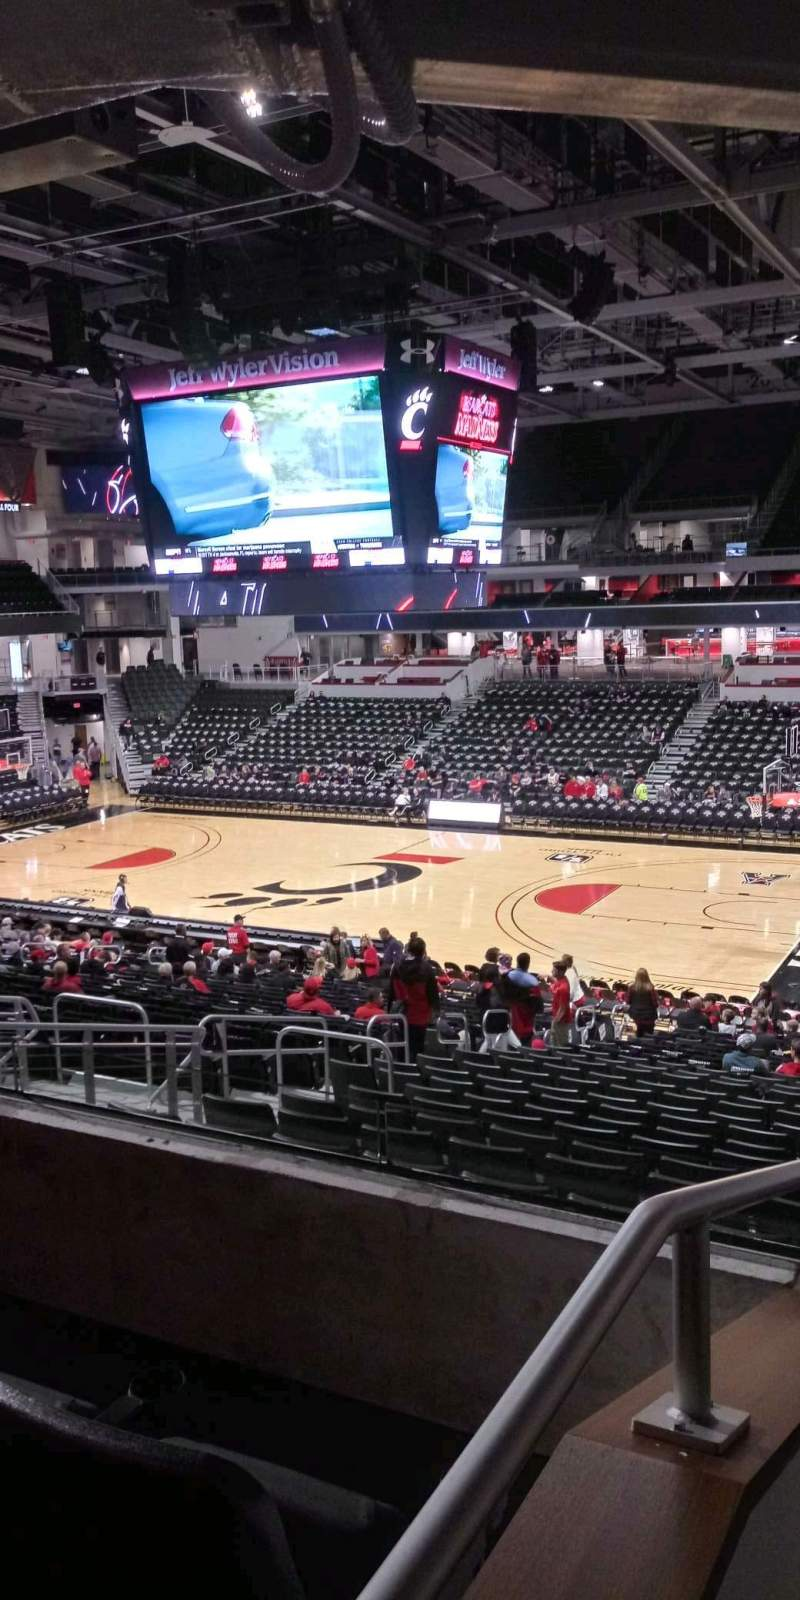 Seating view for Fifth Third Arena Section 114 Row 27 Seat 9